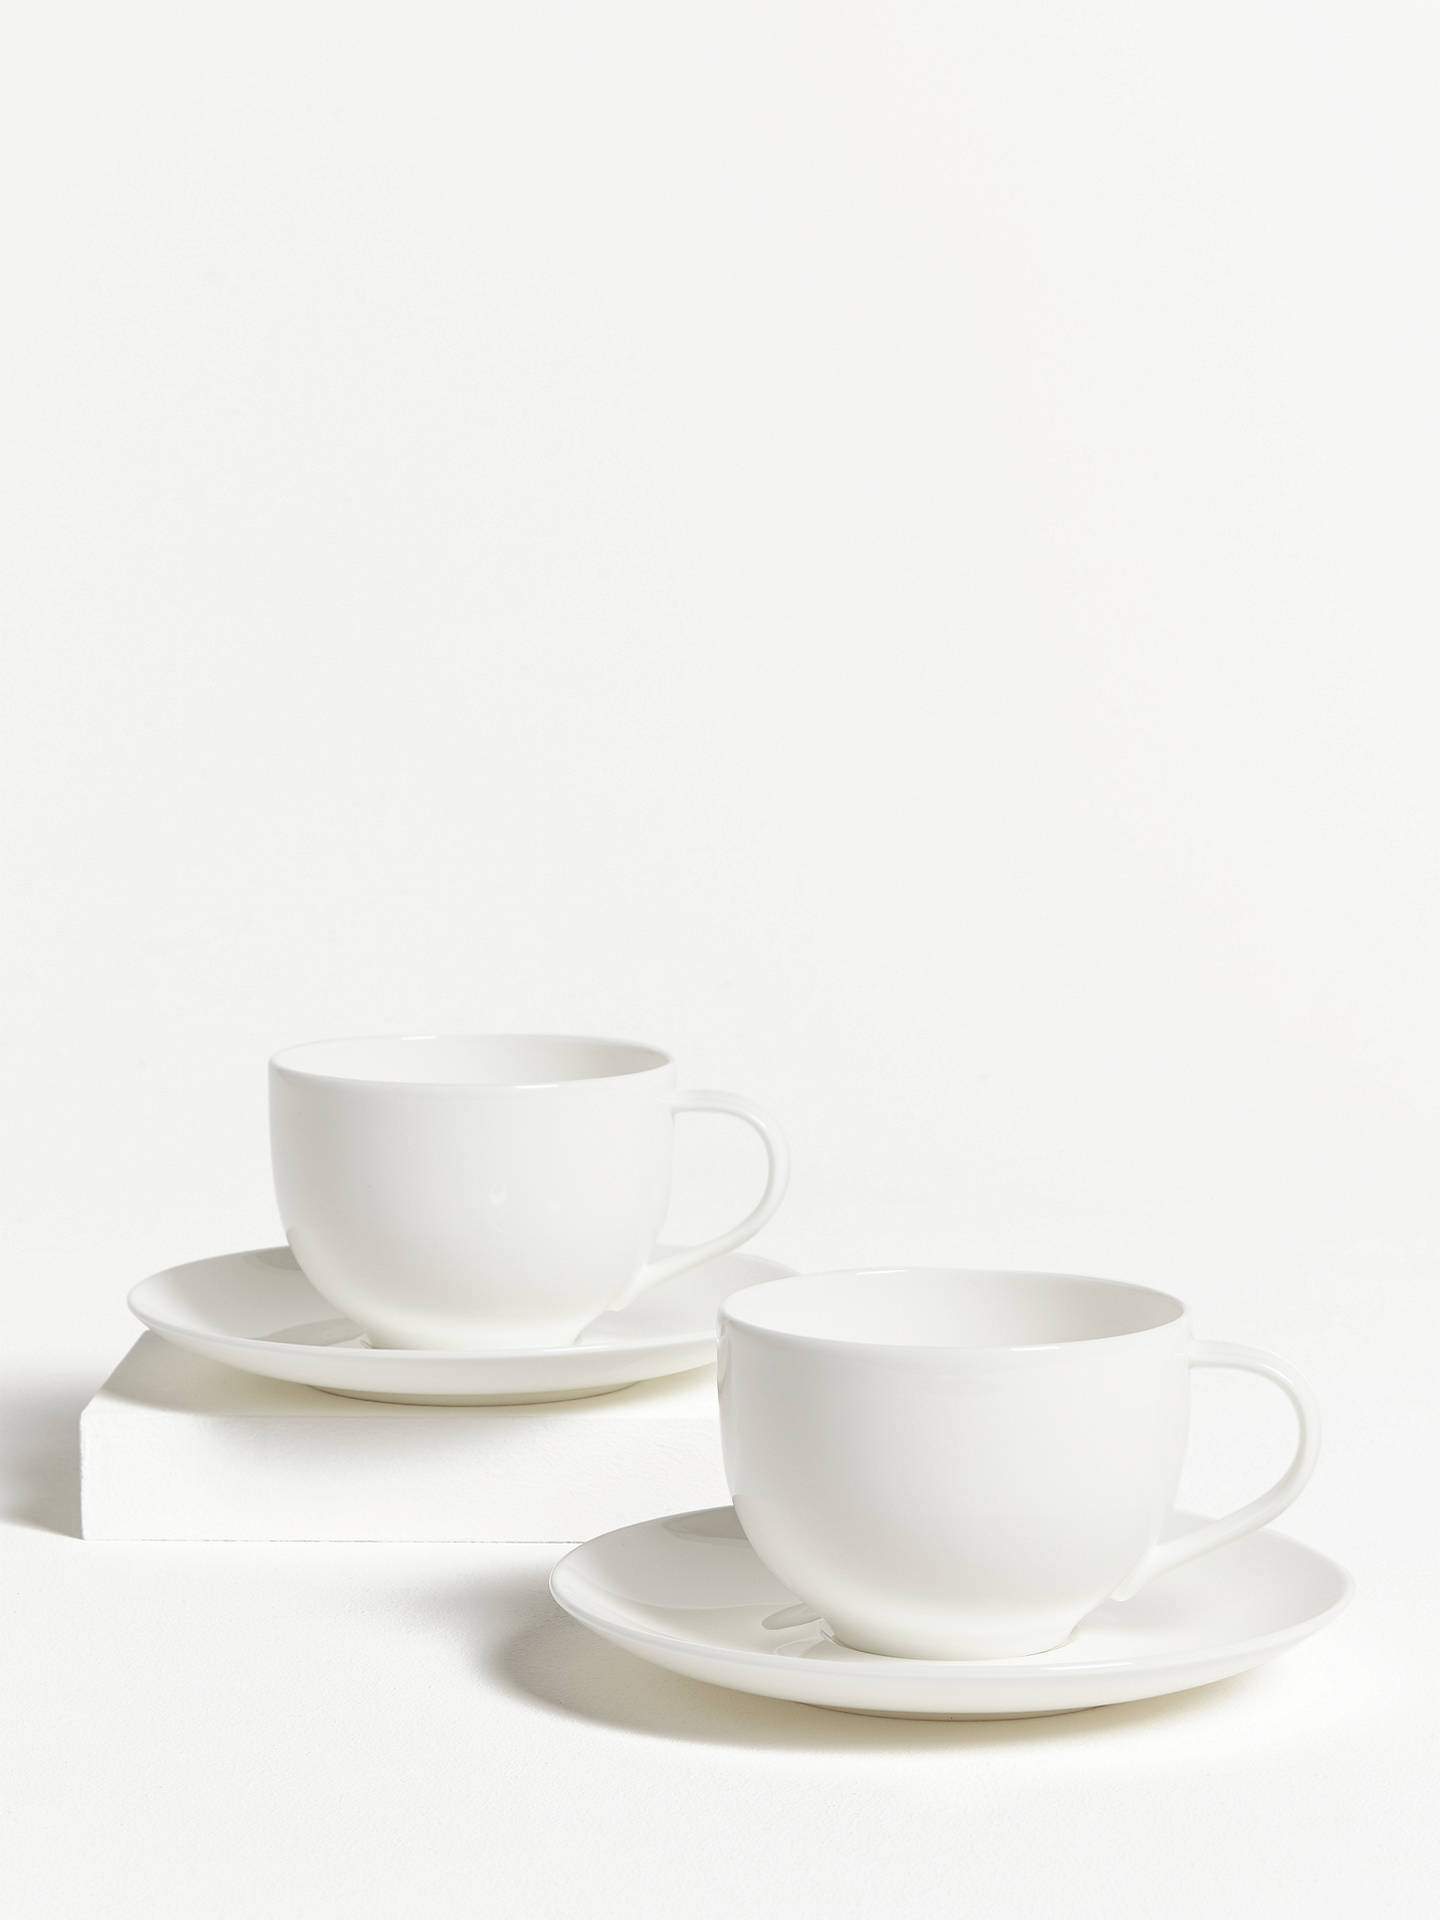 Buy John Lewis & Partners Cup & Saucer, 320ml, Set of 2, White Online at johnlewis.com